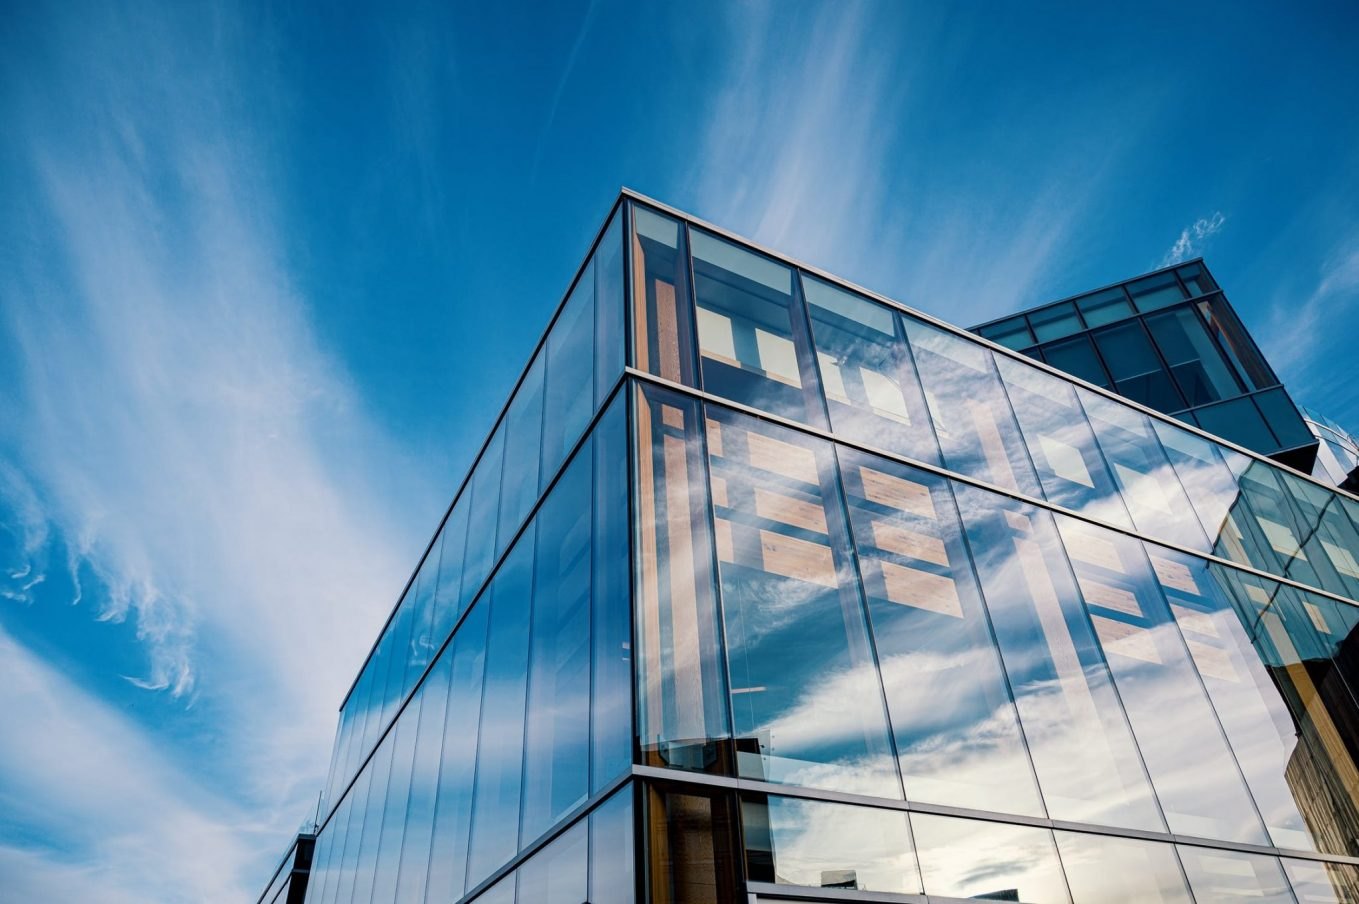 Improve Facility Operations In Three Ways With Commercial Window Films - Commercial Window Tinting in Buffalo, New York